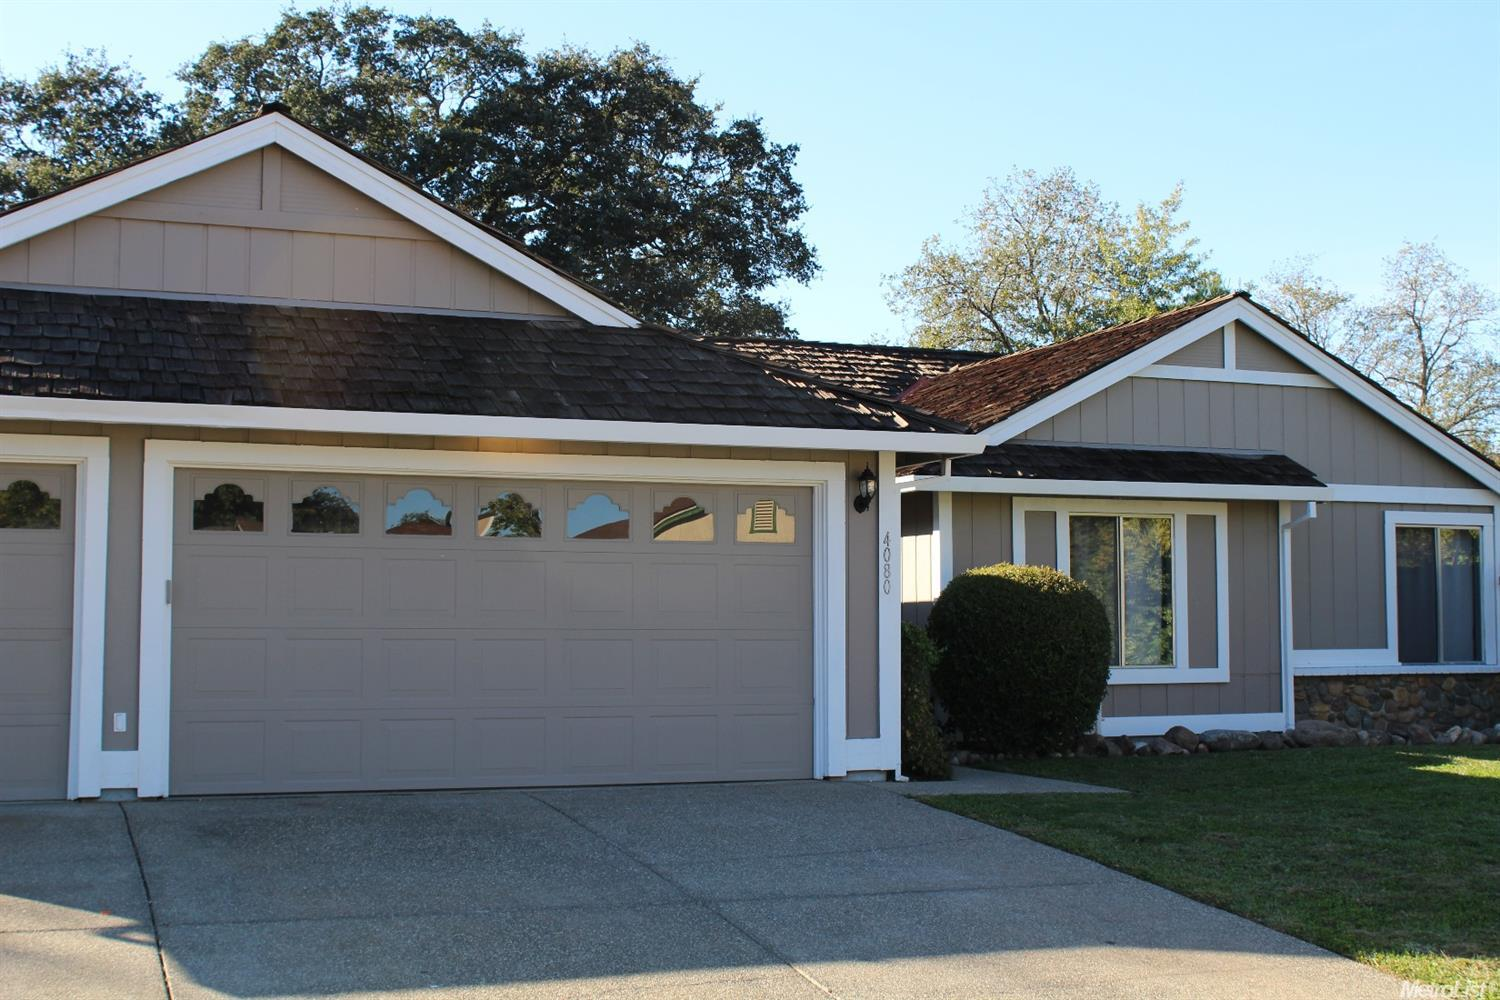 loomis ca real estate houses for sale in placer county